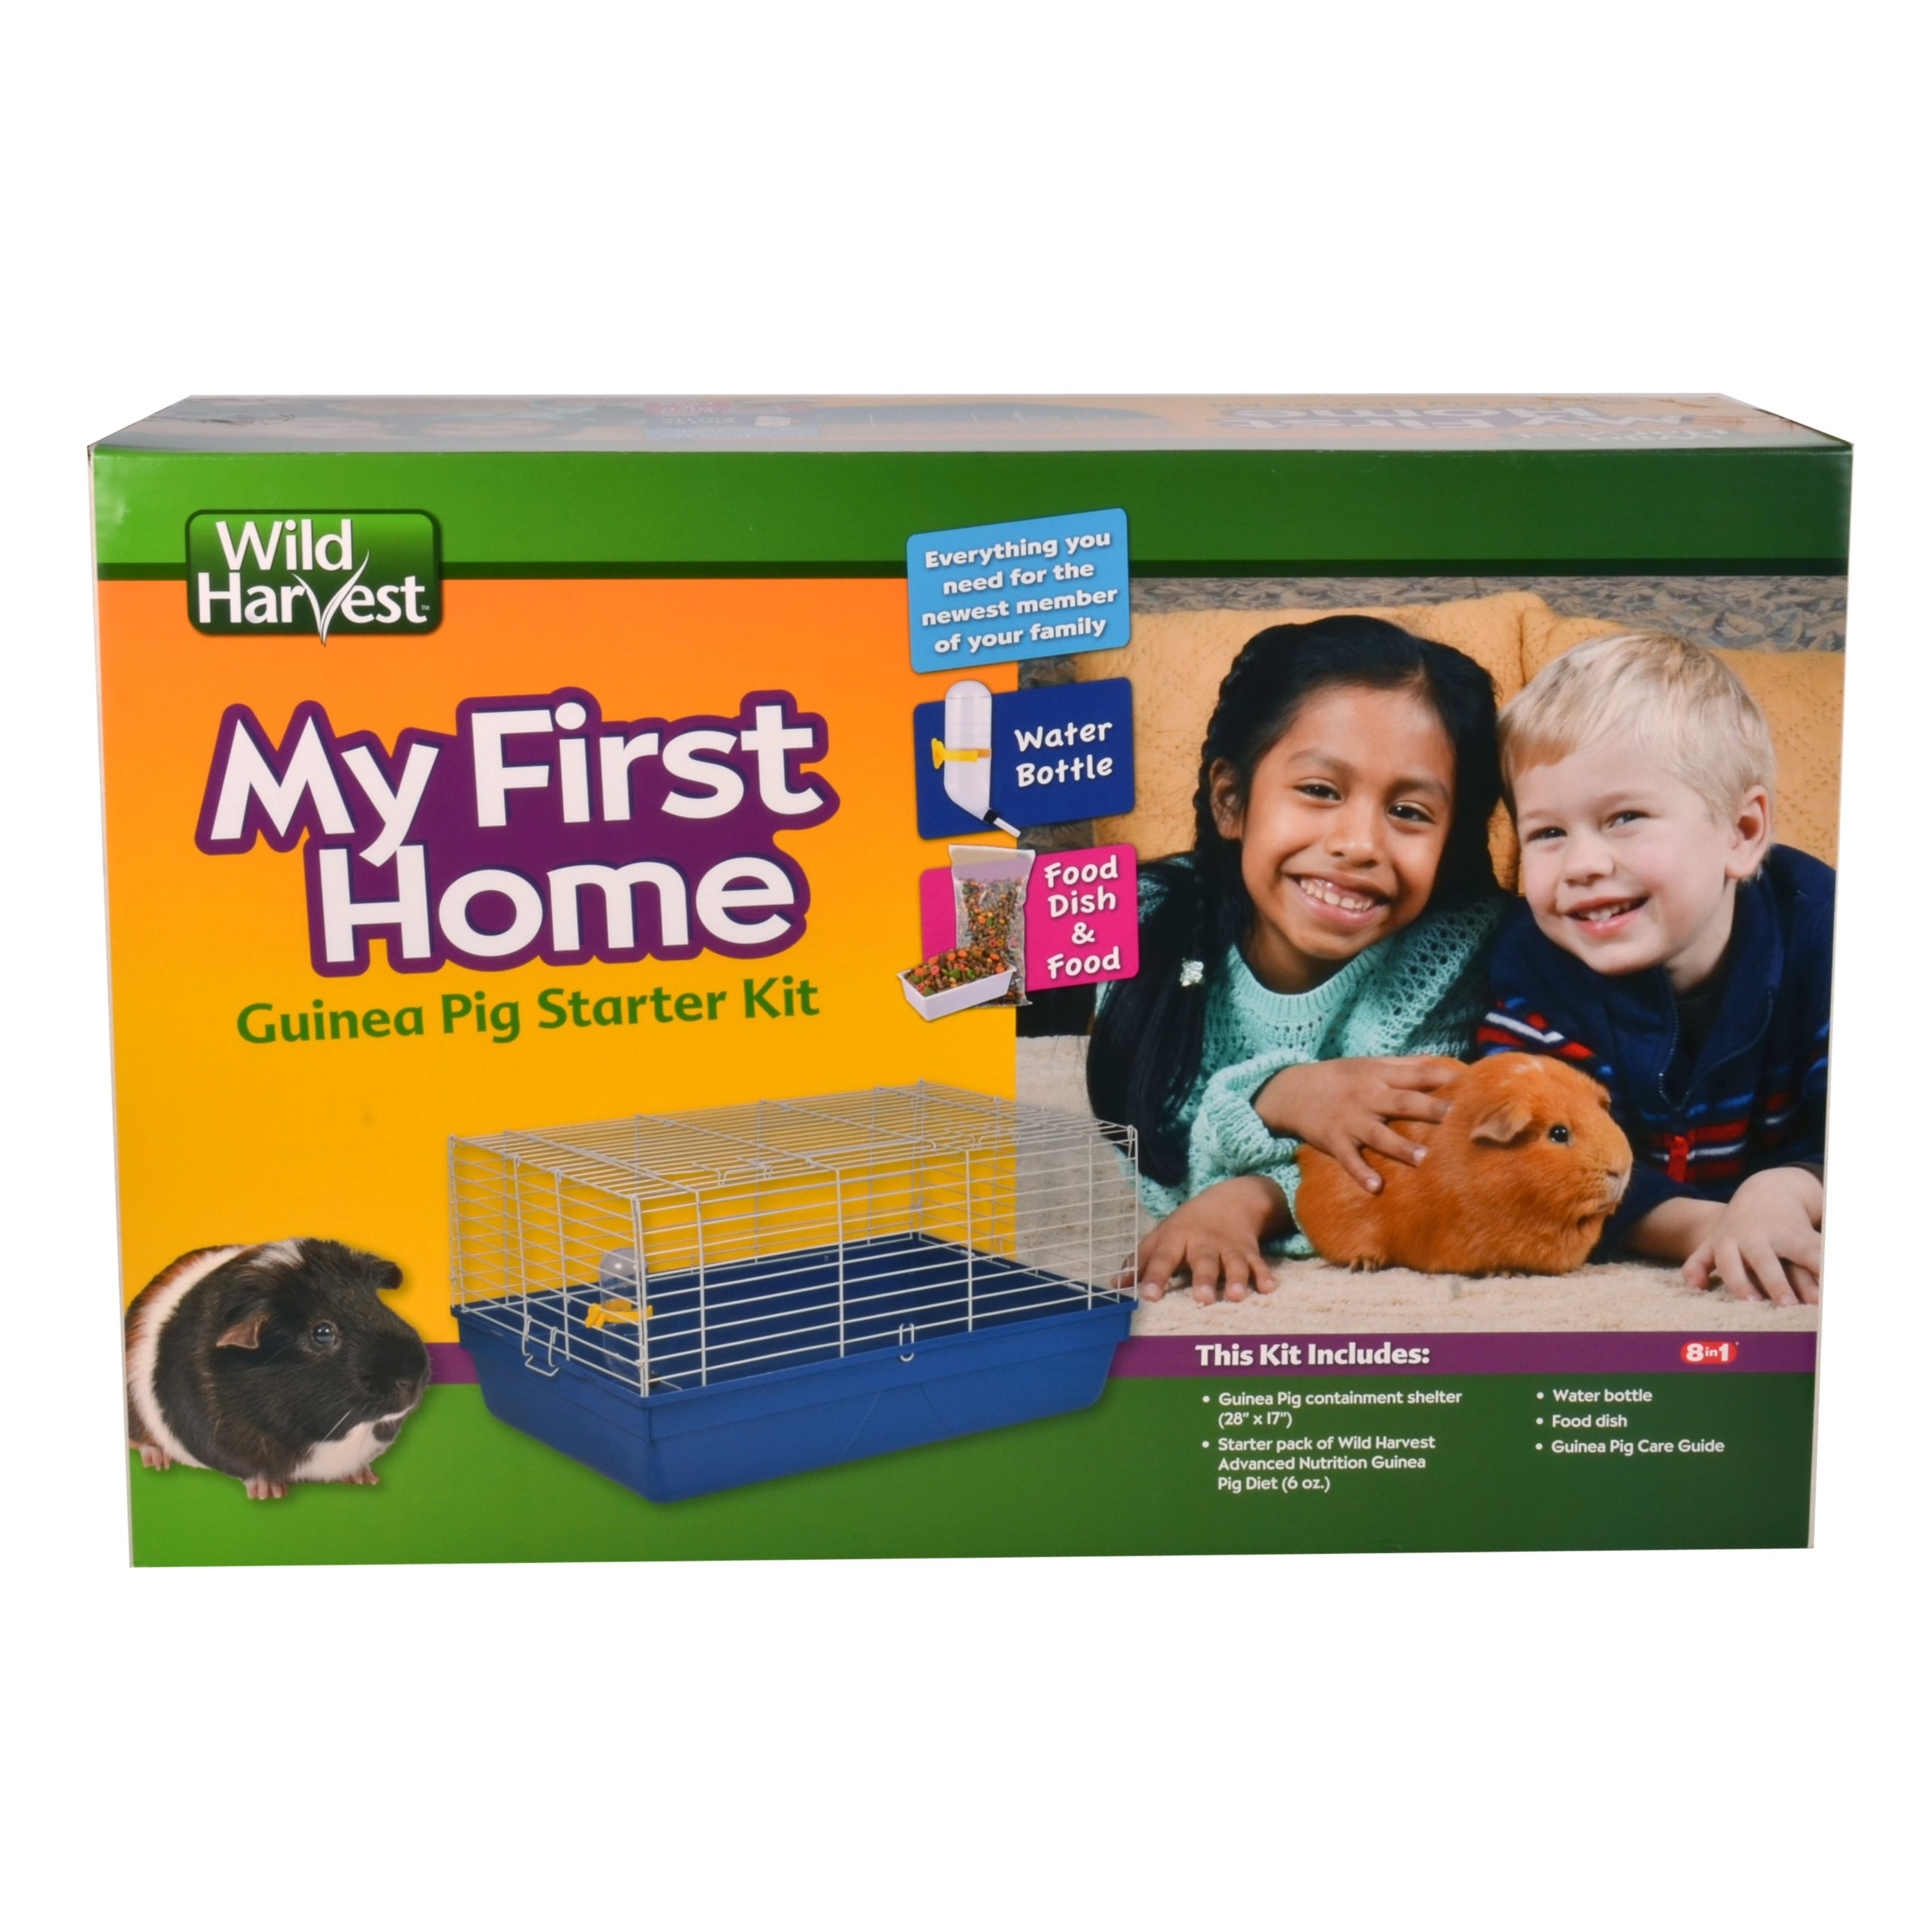 Wild Harvest My First Home Guinea Pig Kit, 28-Inch by 18-Inch by 14.5-Inch (WH-83525)